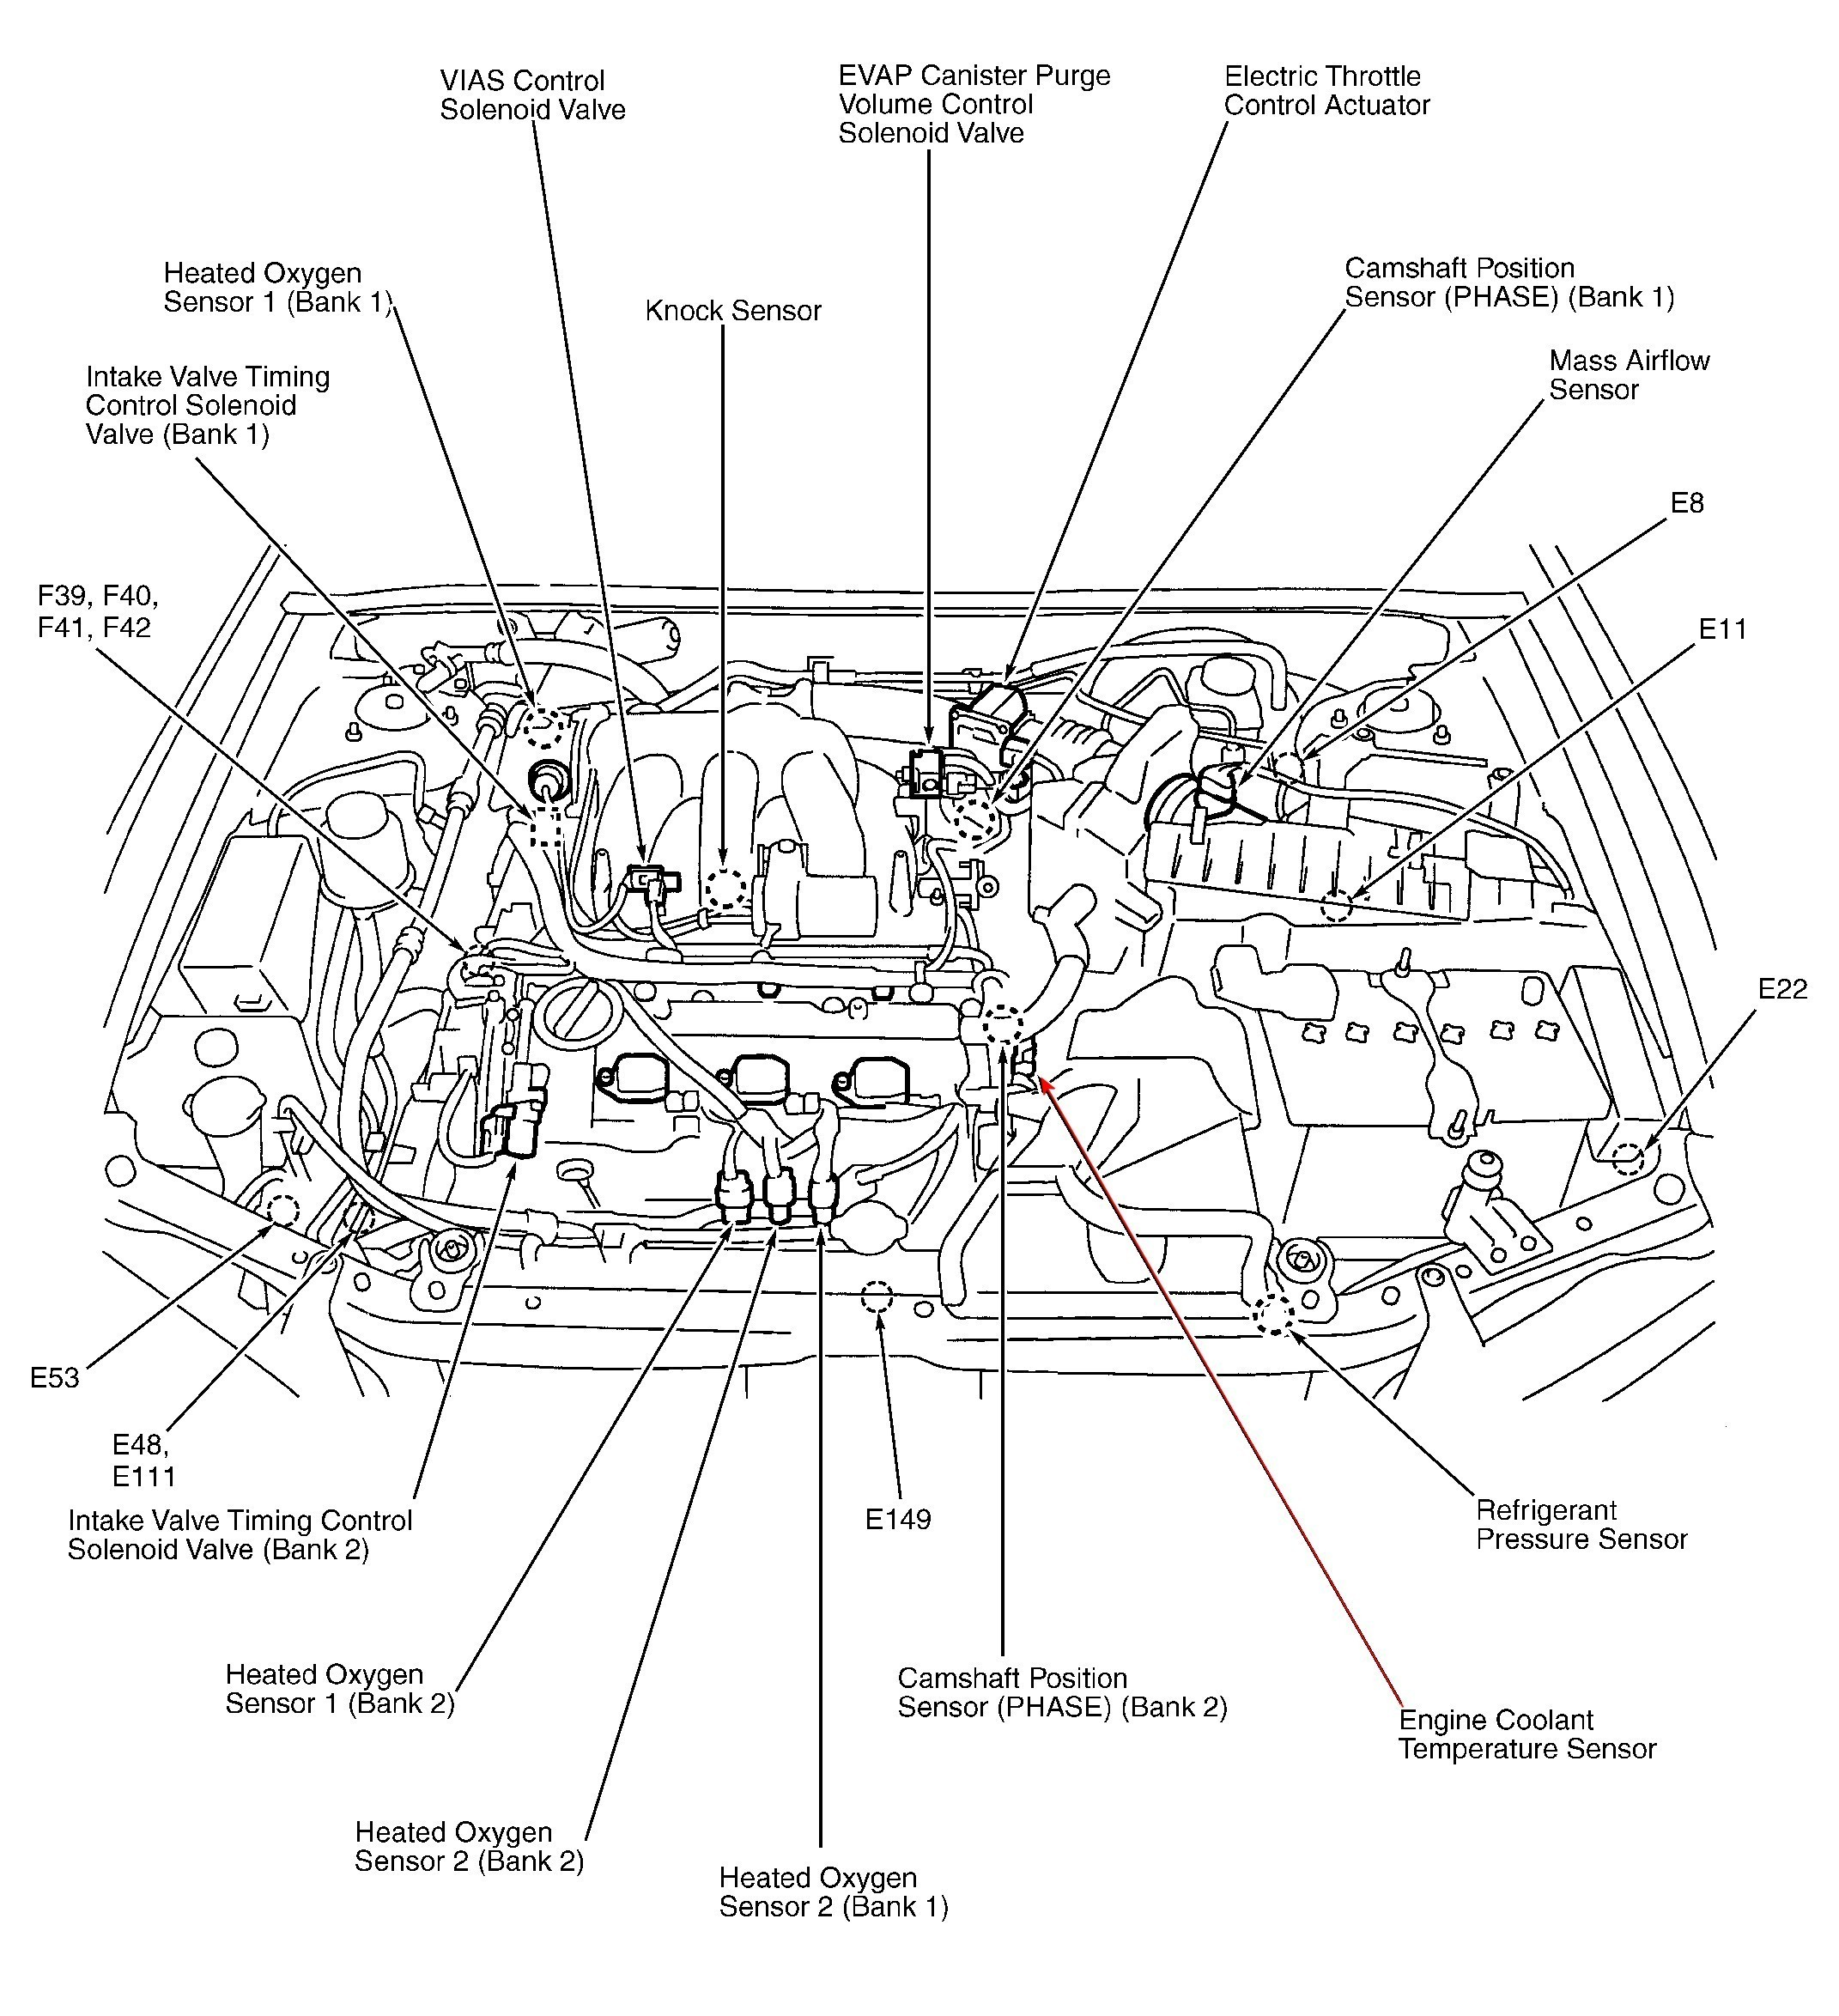 2008 Chevy Impala Wiring Diagram Chevrolet Impala Electrical System 2000 Chevrolet Impala Caroldoey Of 2008 Chevy Impala Wiring Diagram